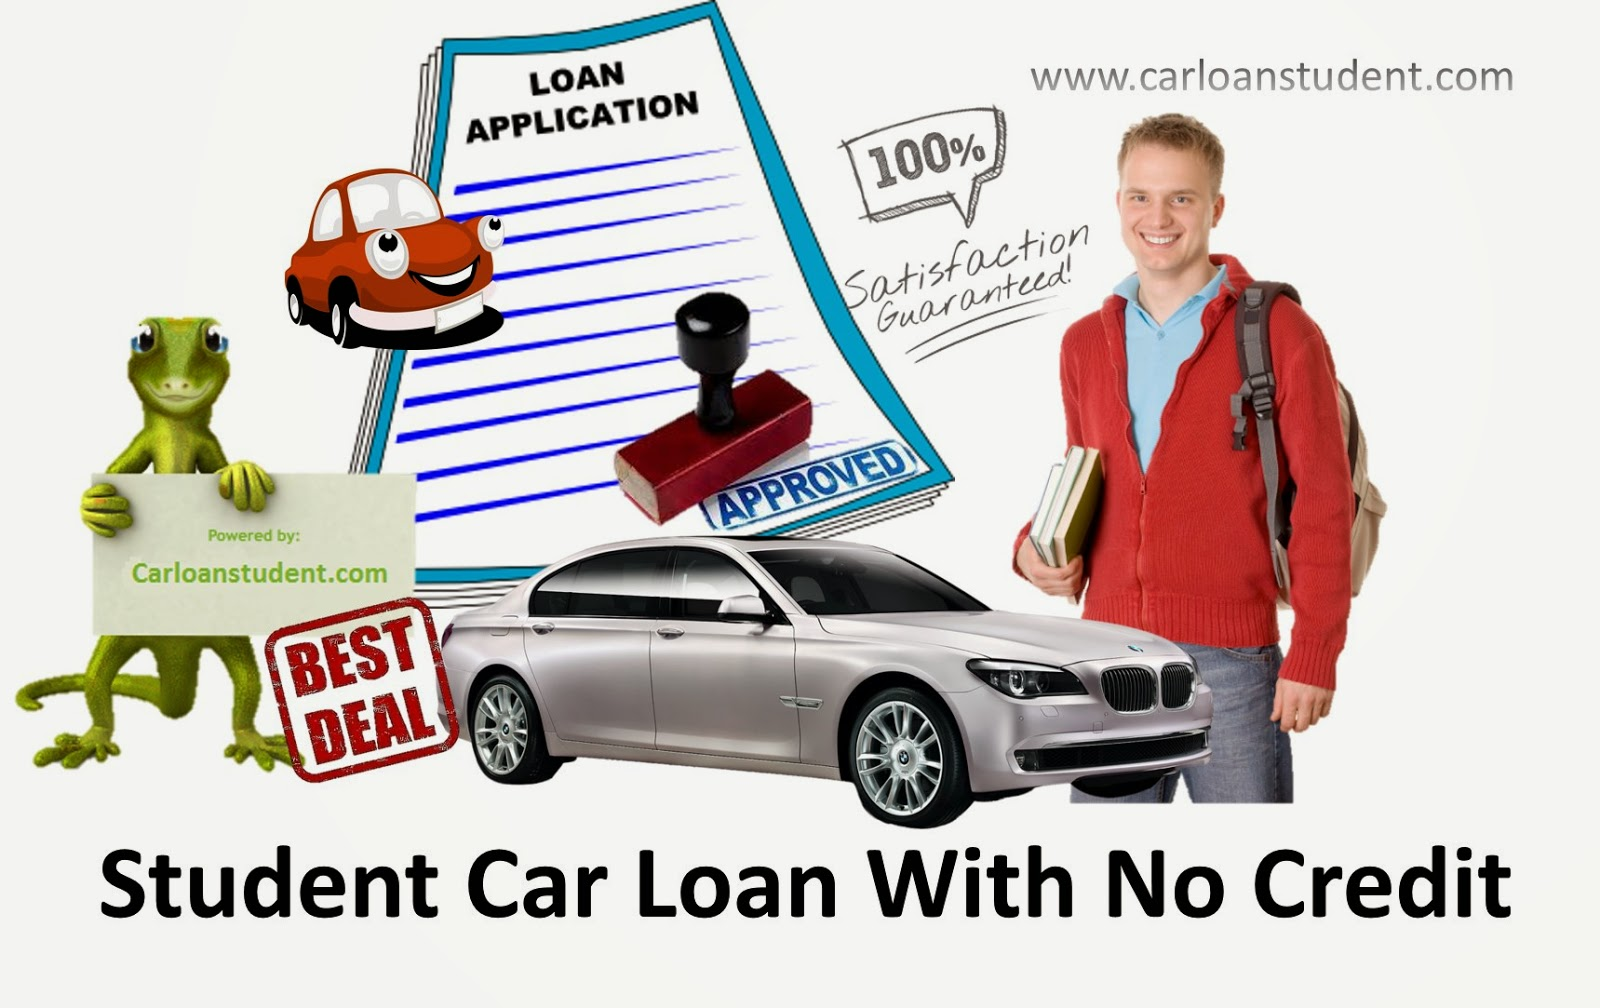 Small Student Car Loans To Purchase Car Knowing All Requirements To Get Lowest Rates ~ Student ...